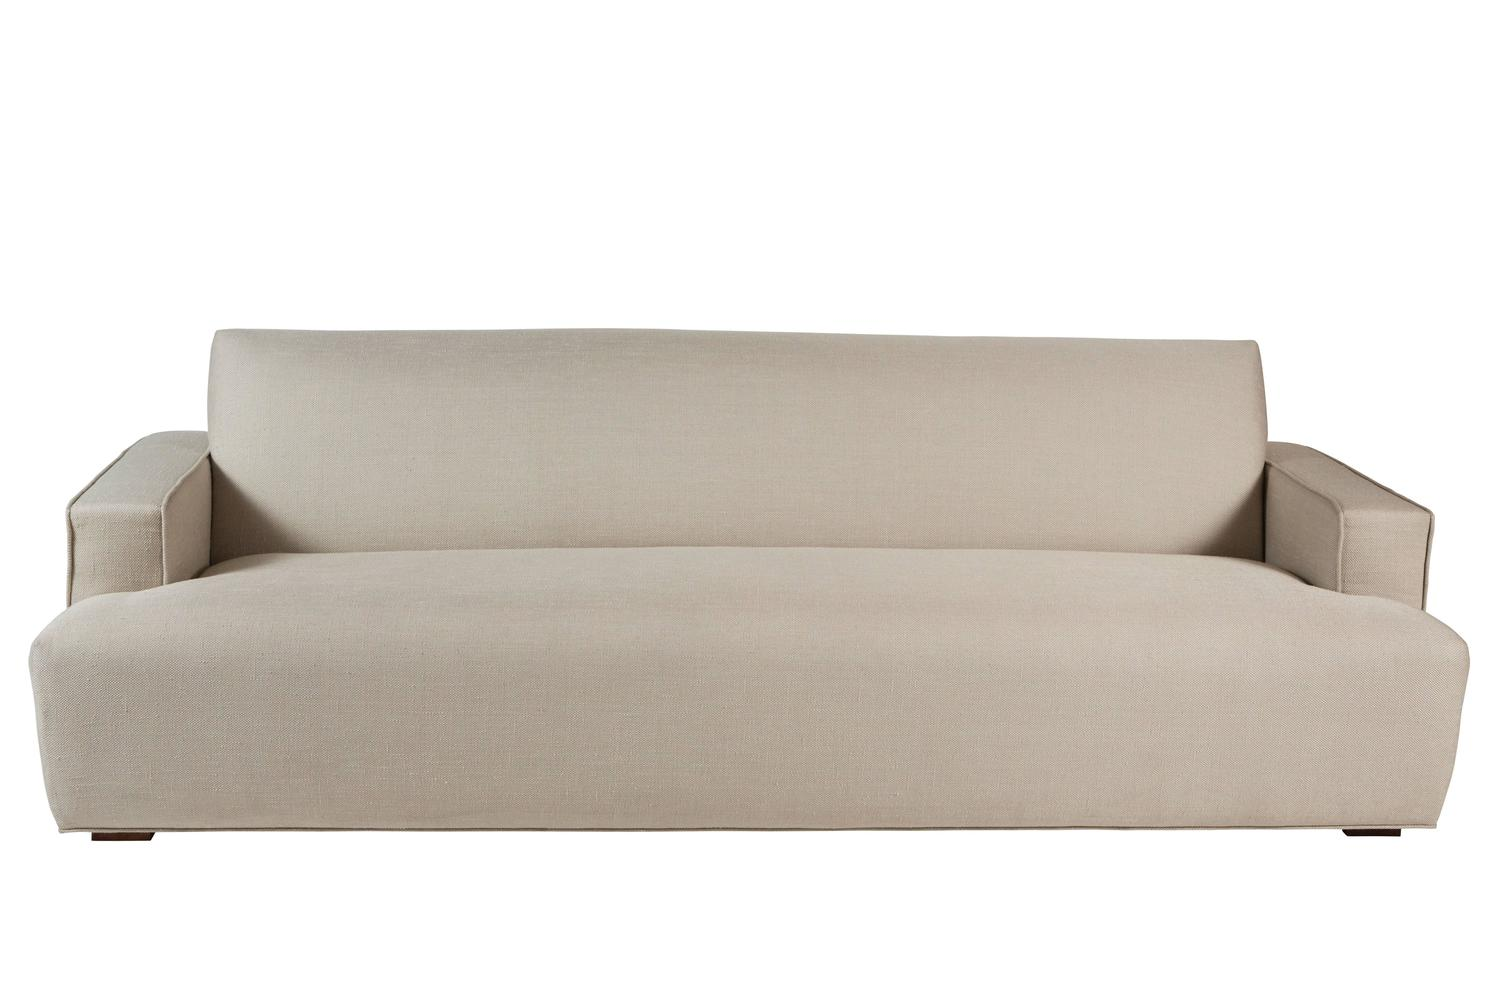 Impressive Sofa By William Billy Haines For Sale At 1stdibs